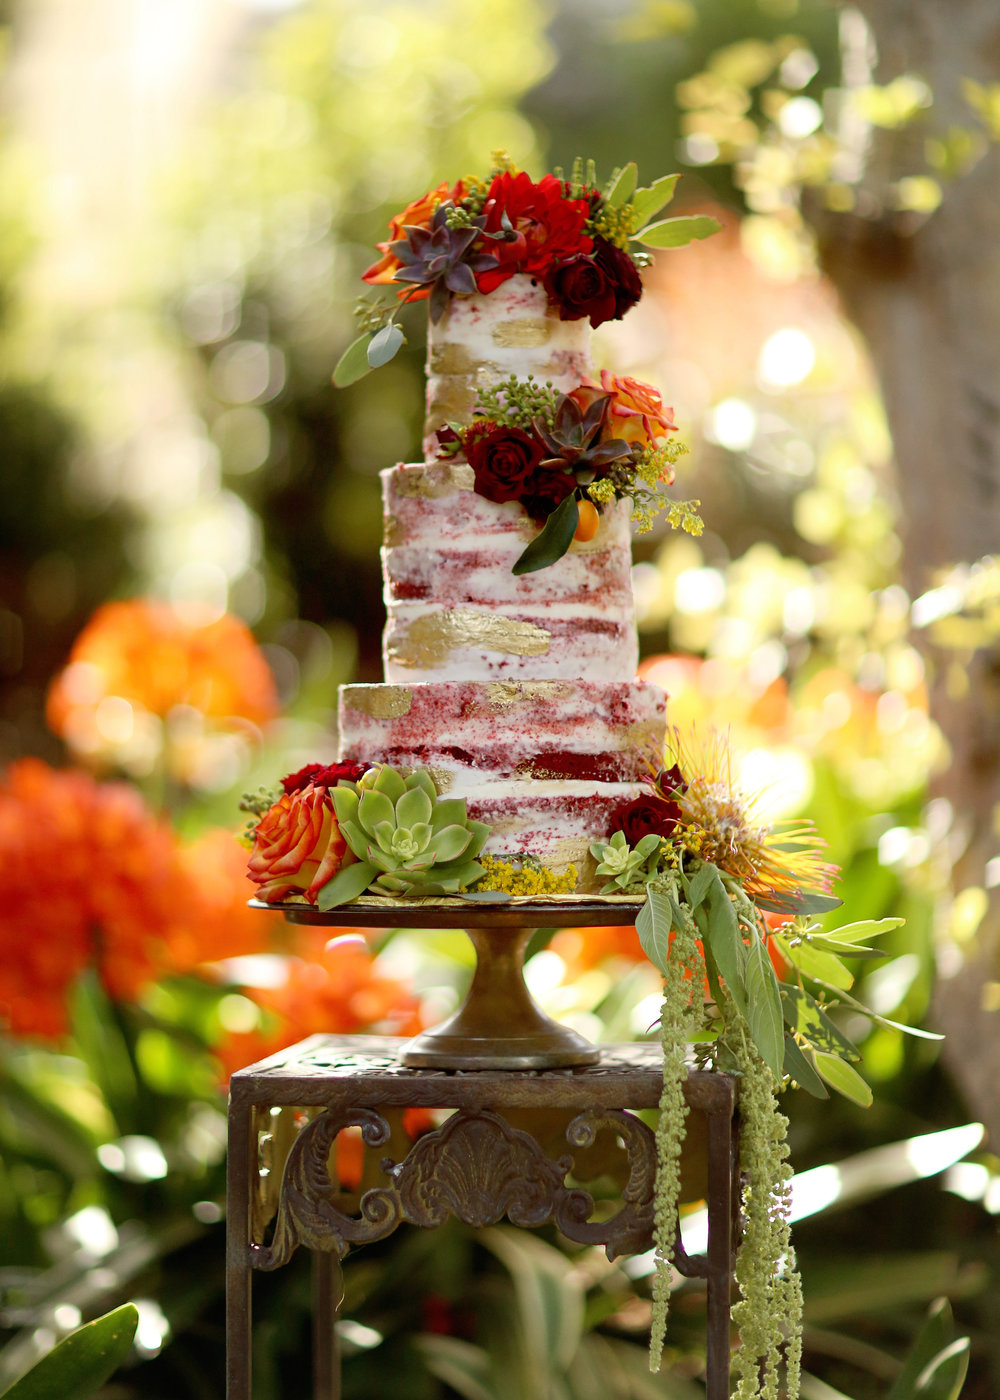 Boho Wedding Cake - A Modern Bohemian Outdoor Wedding Shoot - Bleudog Fotography